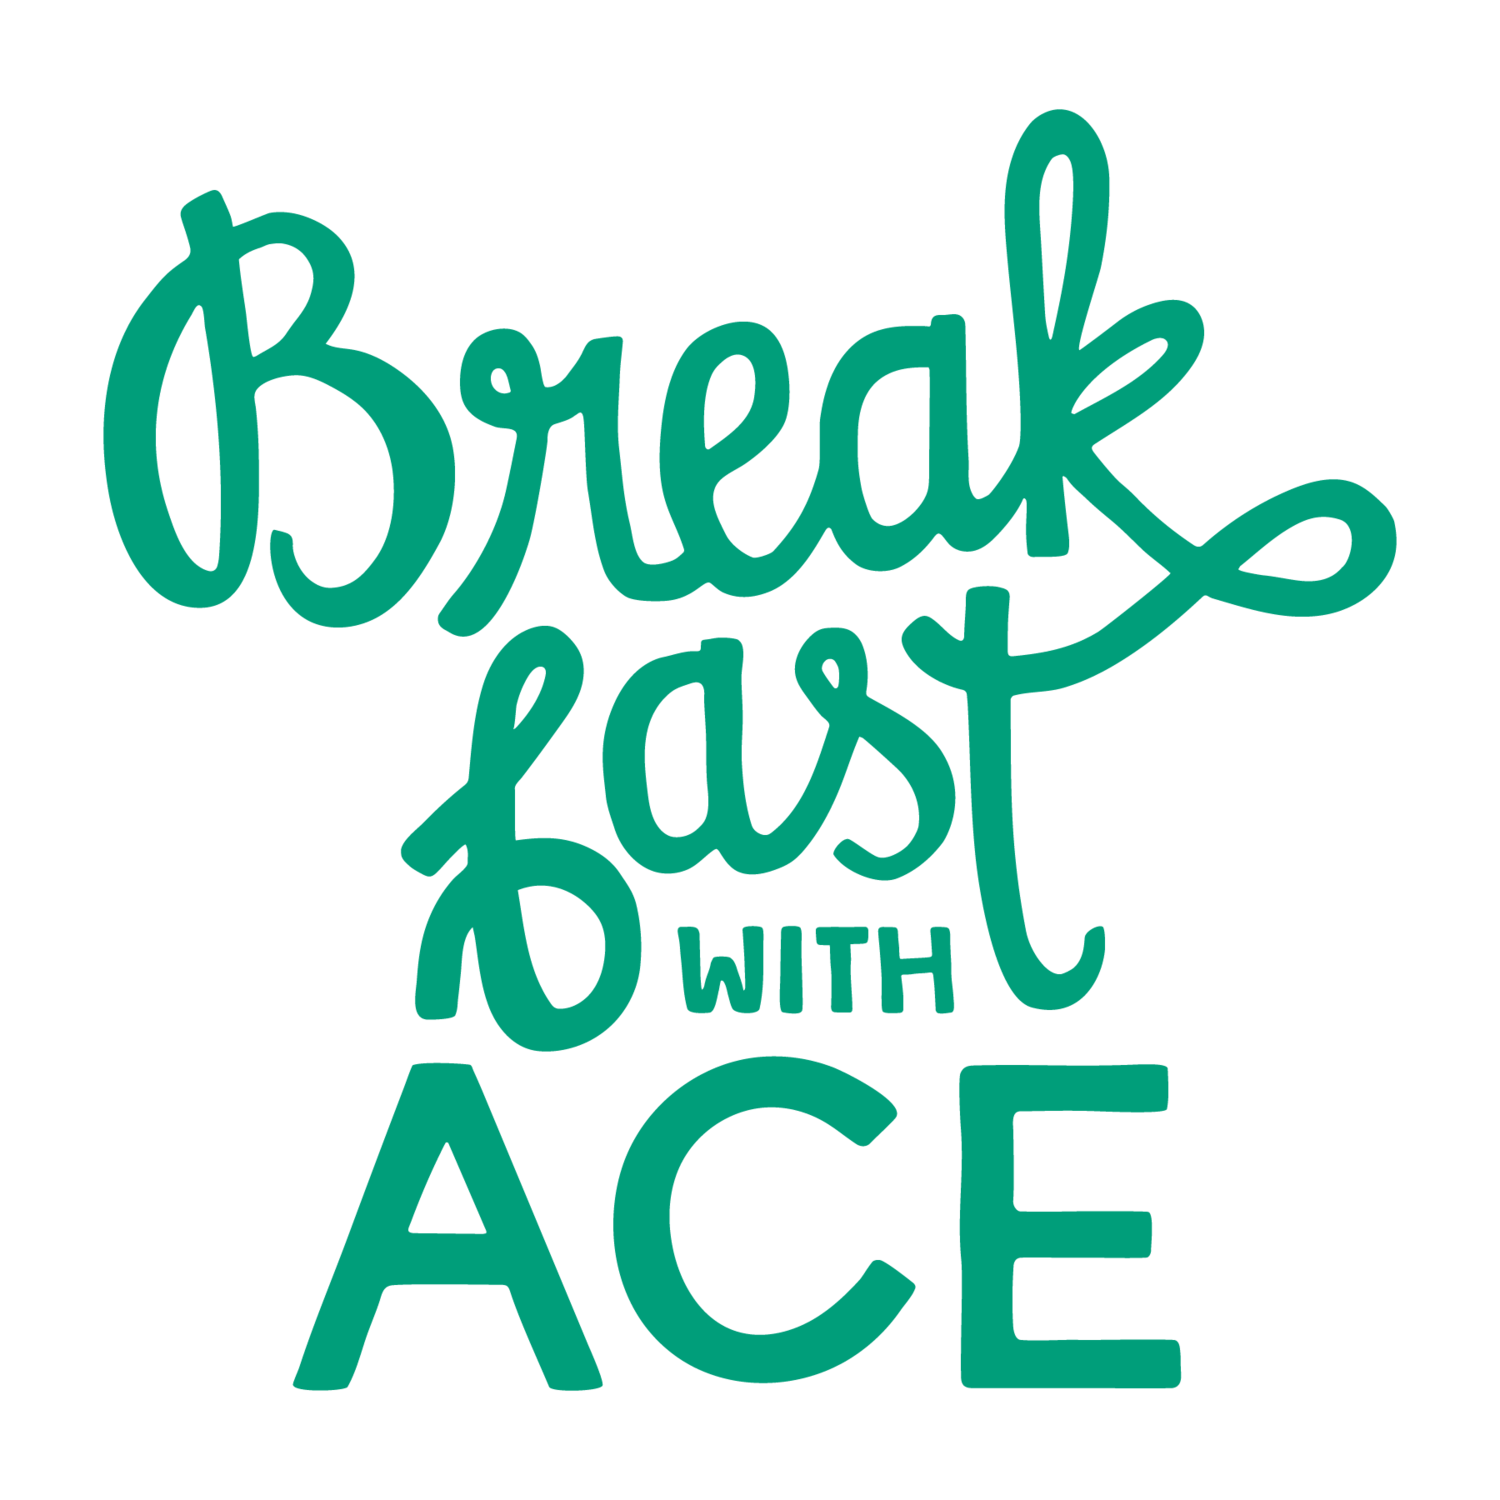 breakfast with ace